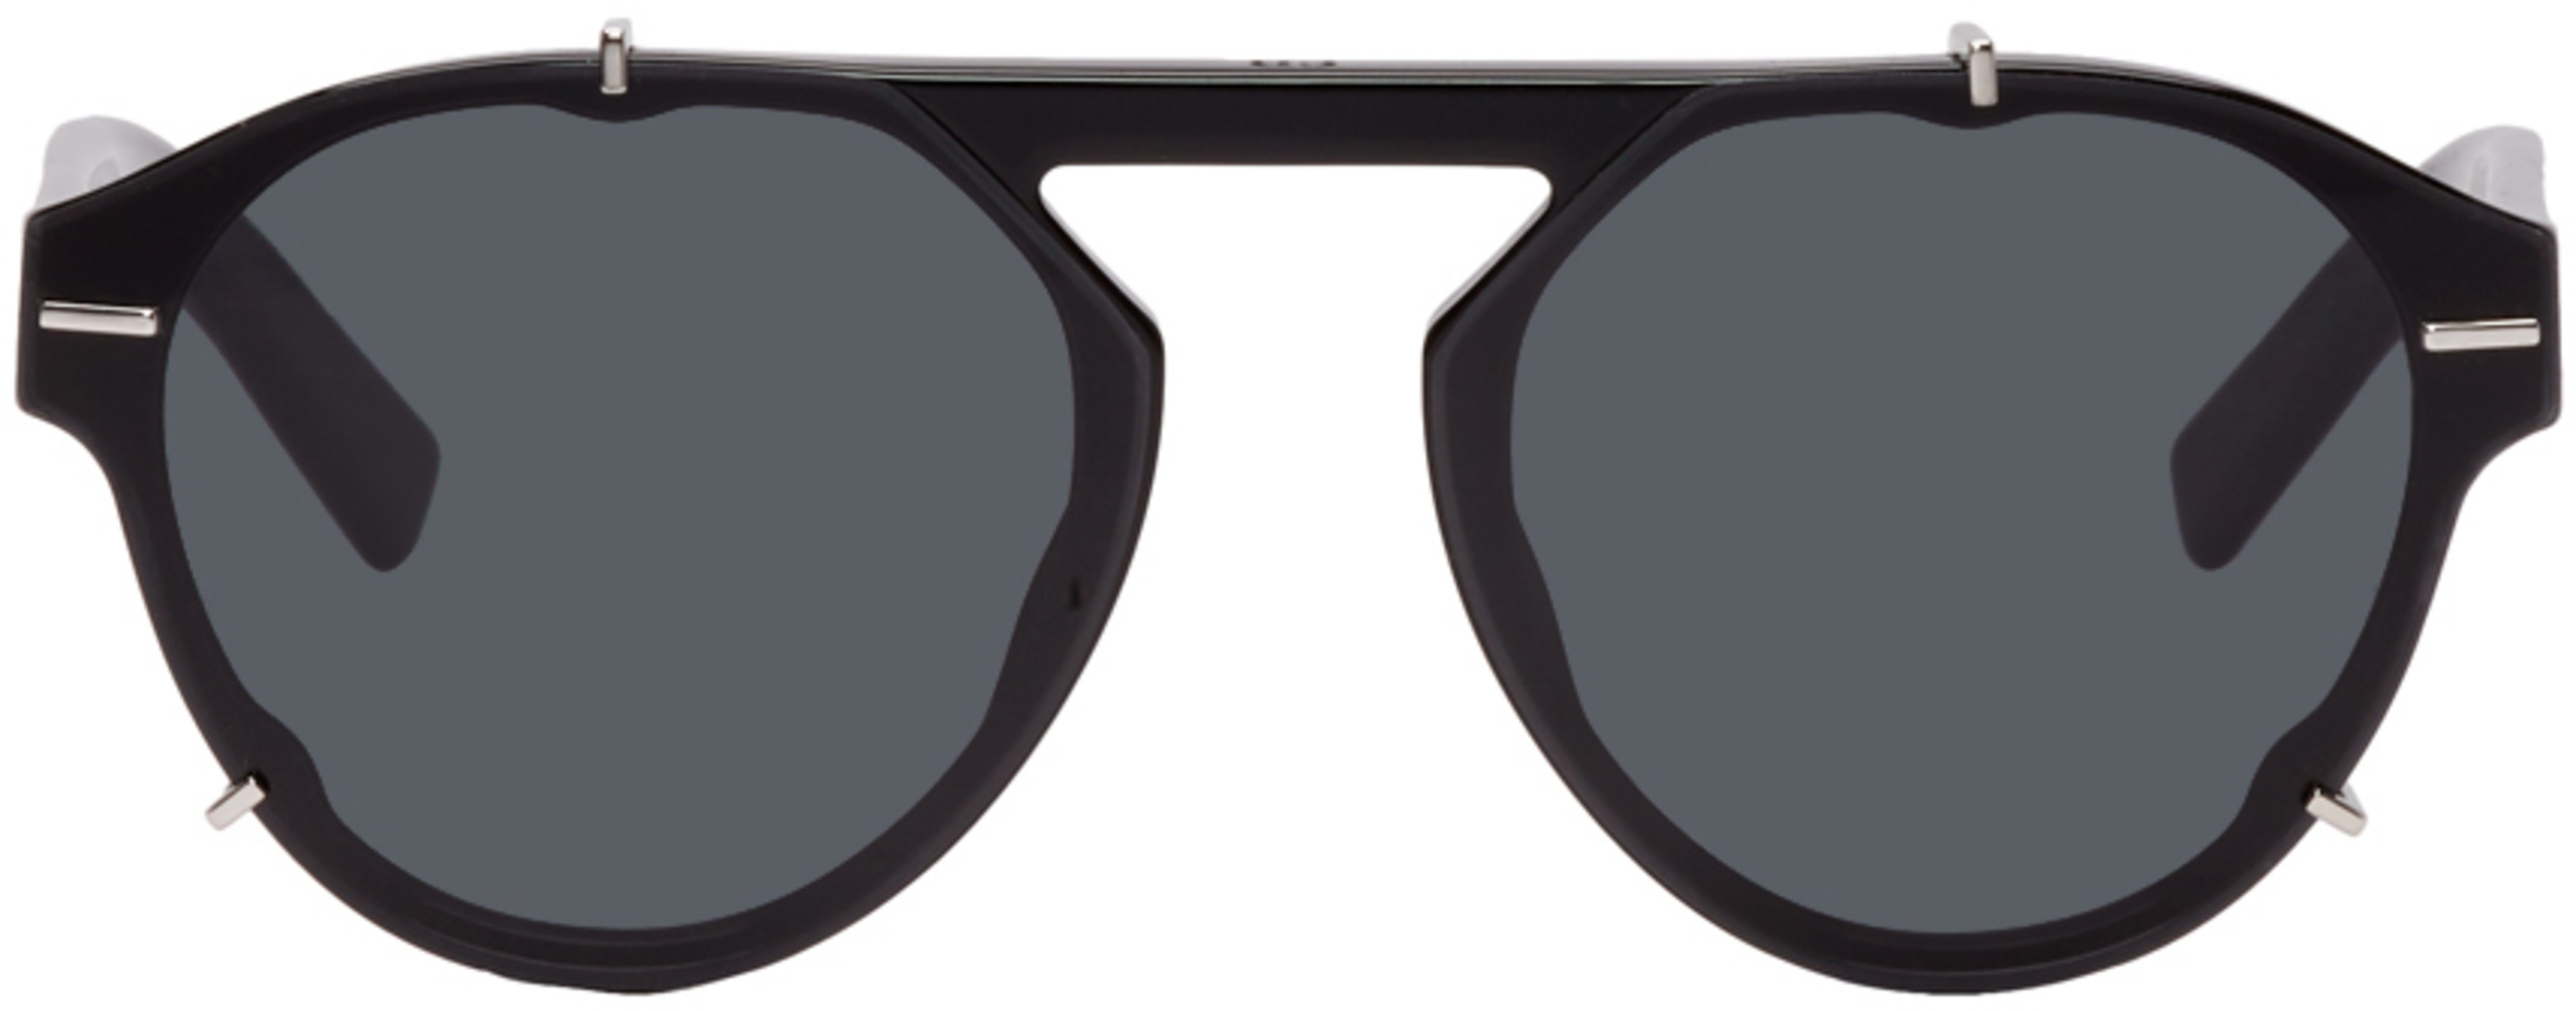 5f137479fc4a Designer sunglasses for Men